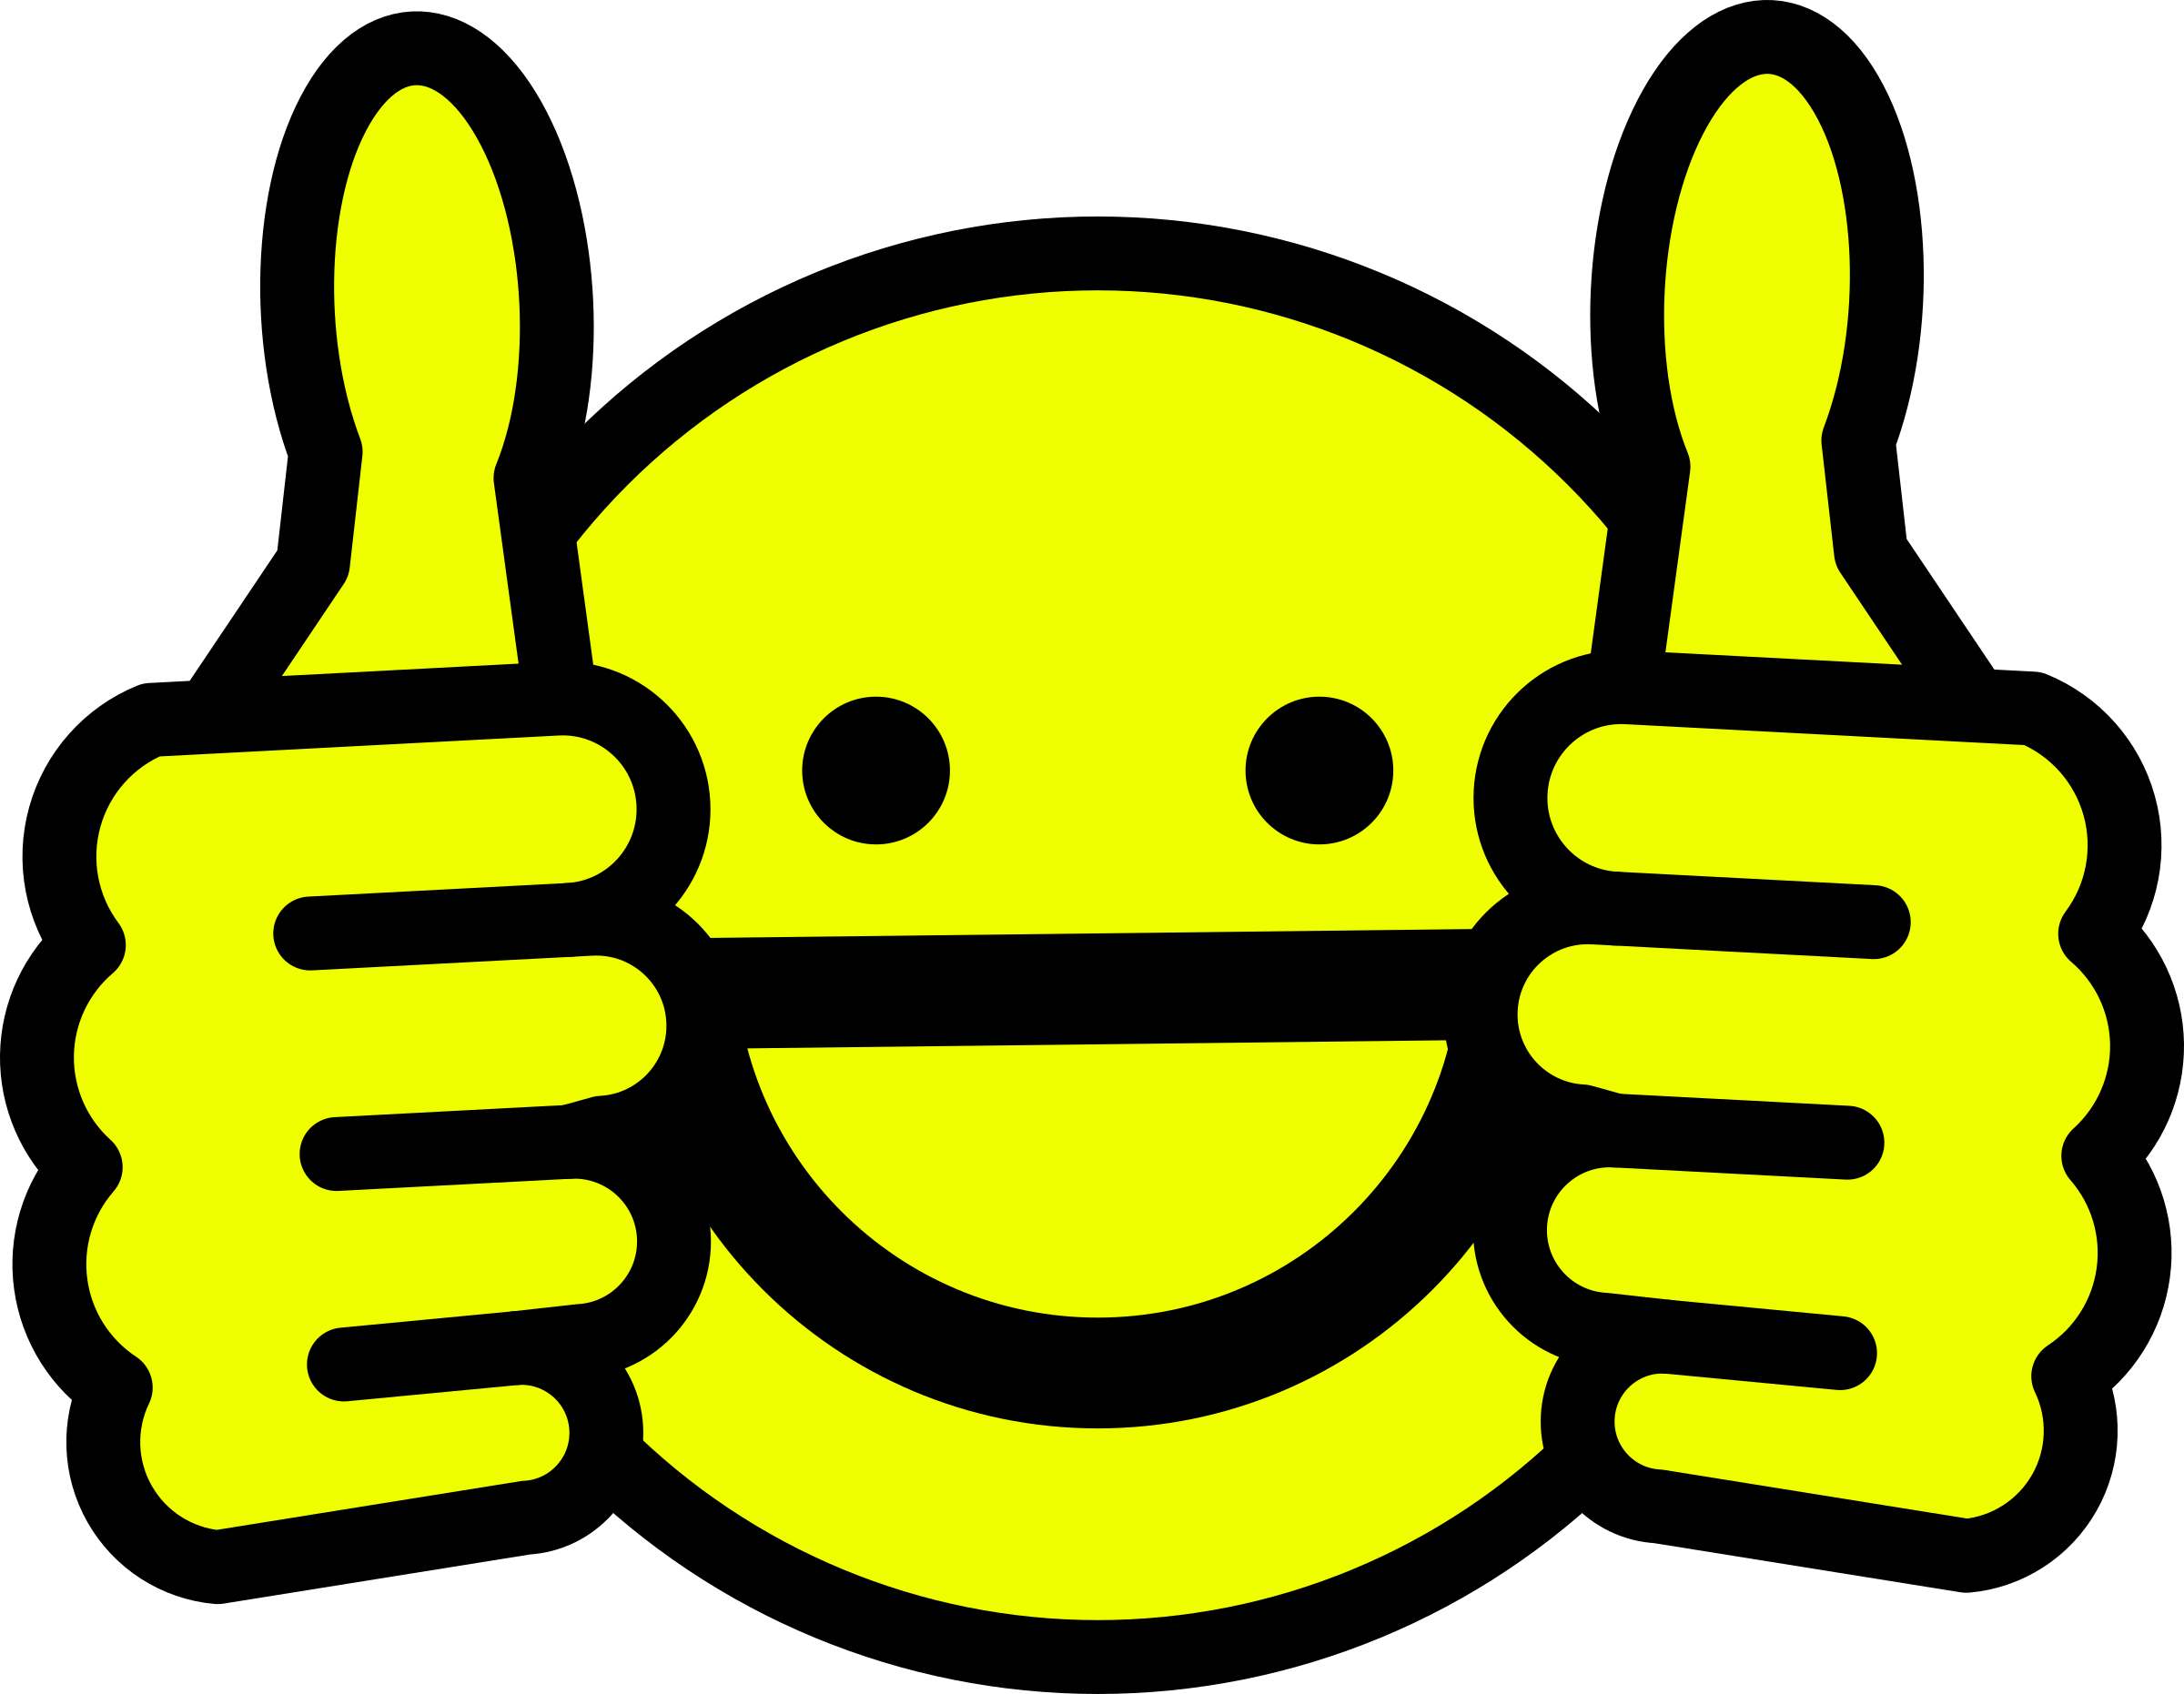 Clipart awesome face smiley awesome face smiley voltagebd Image collections